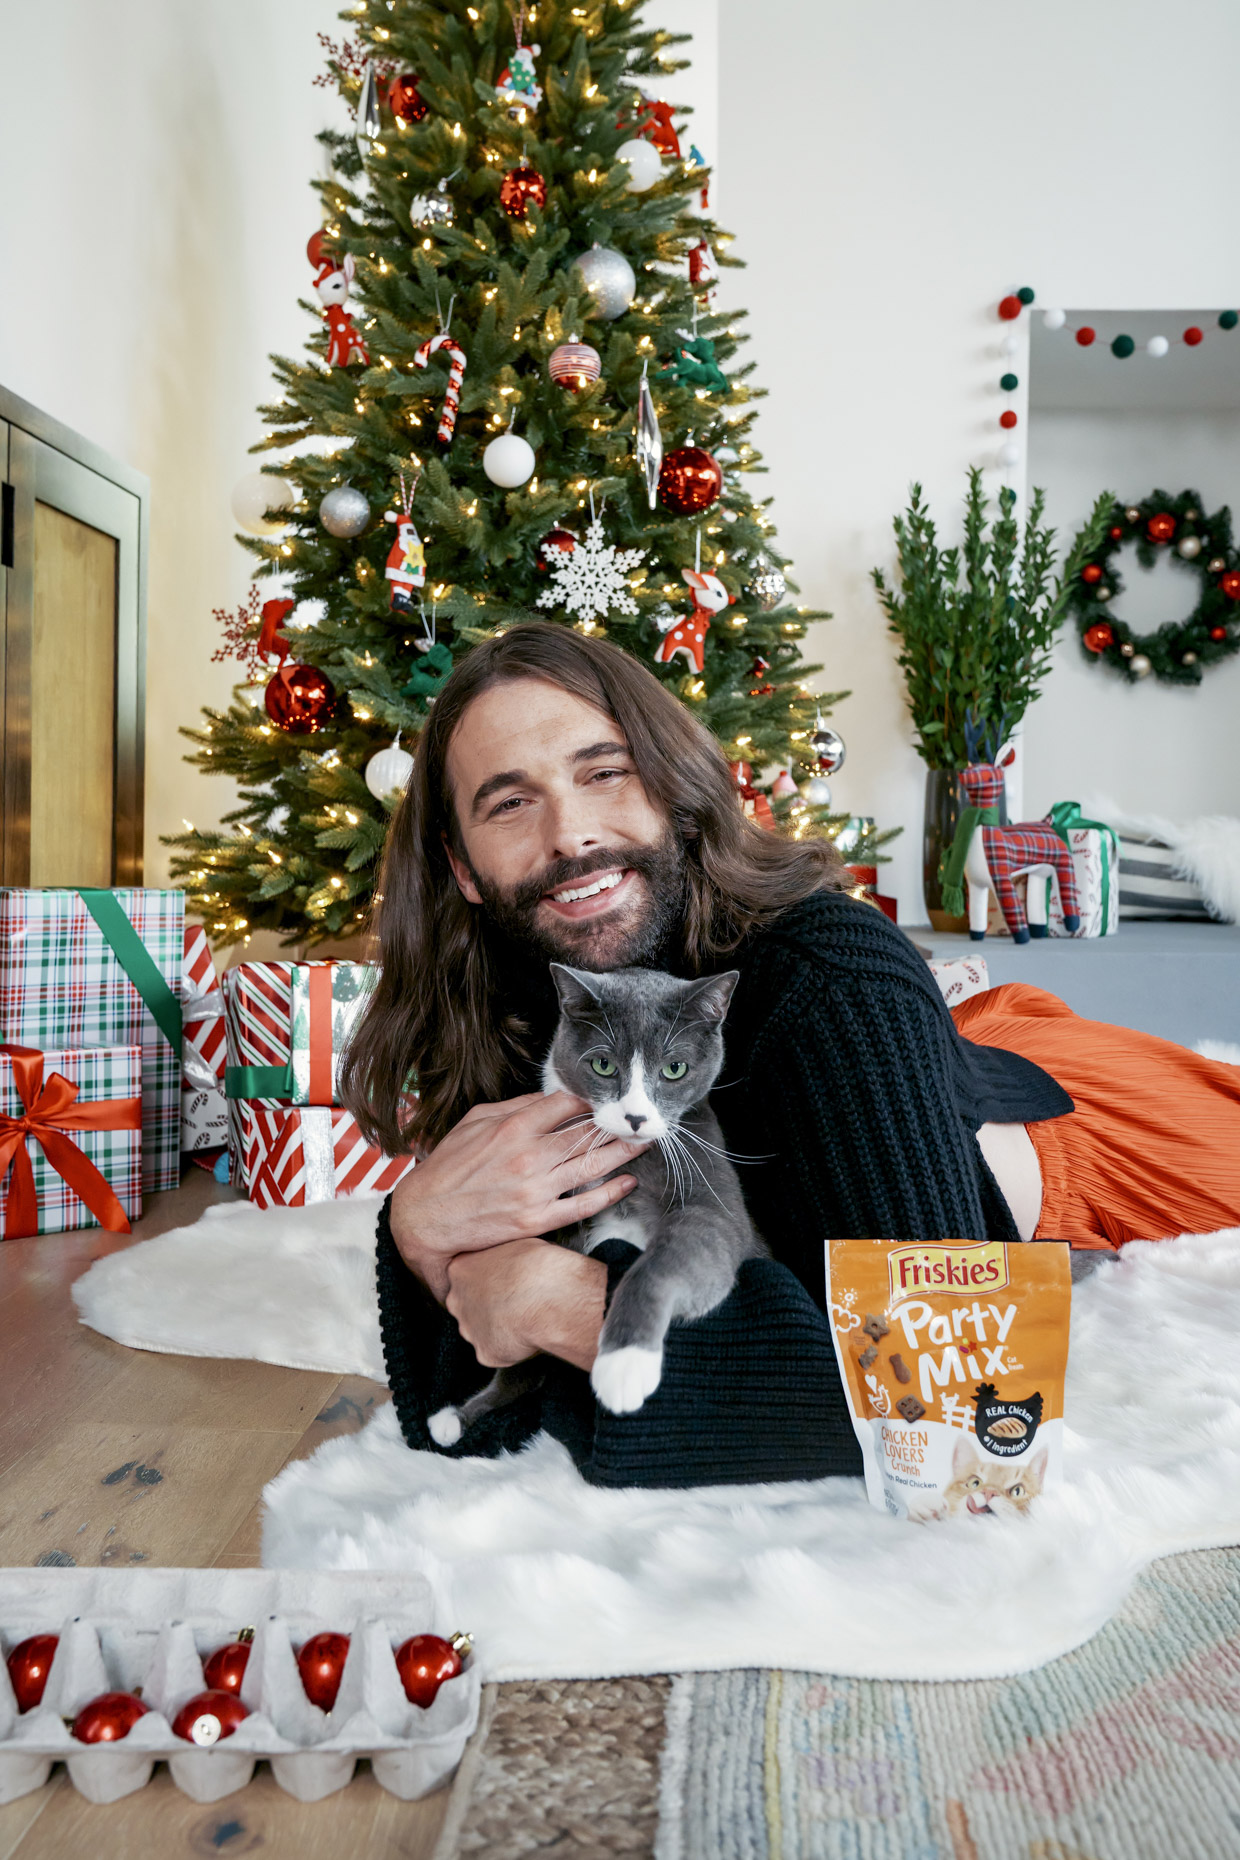 Jonathan Van Ness snuggling cat in front of Christmas tree with Friskies party mix